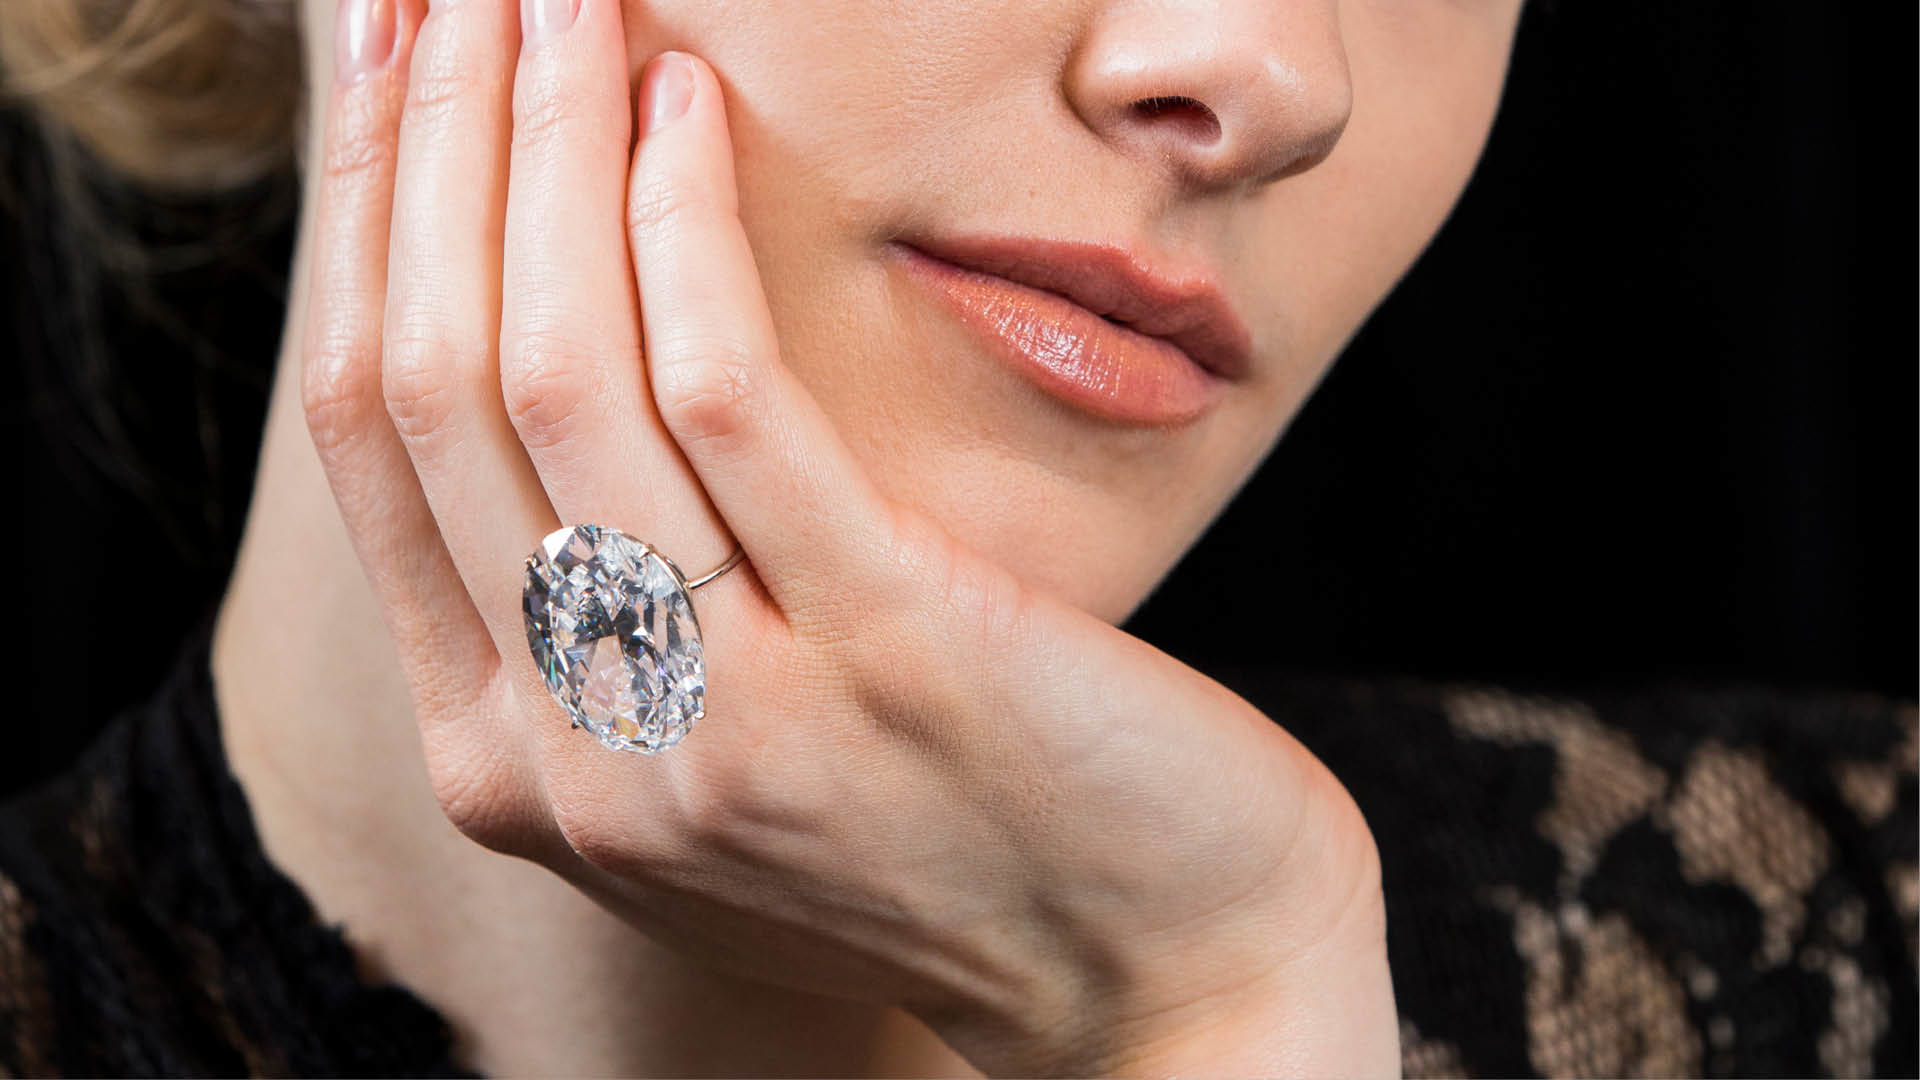 10 Jaw-Dropping Jewels At Sotheby's Dubai This Week